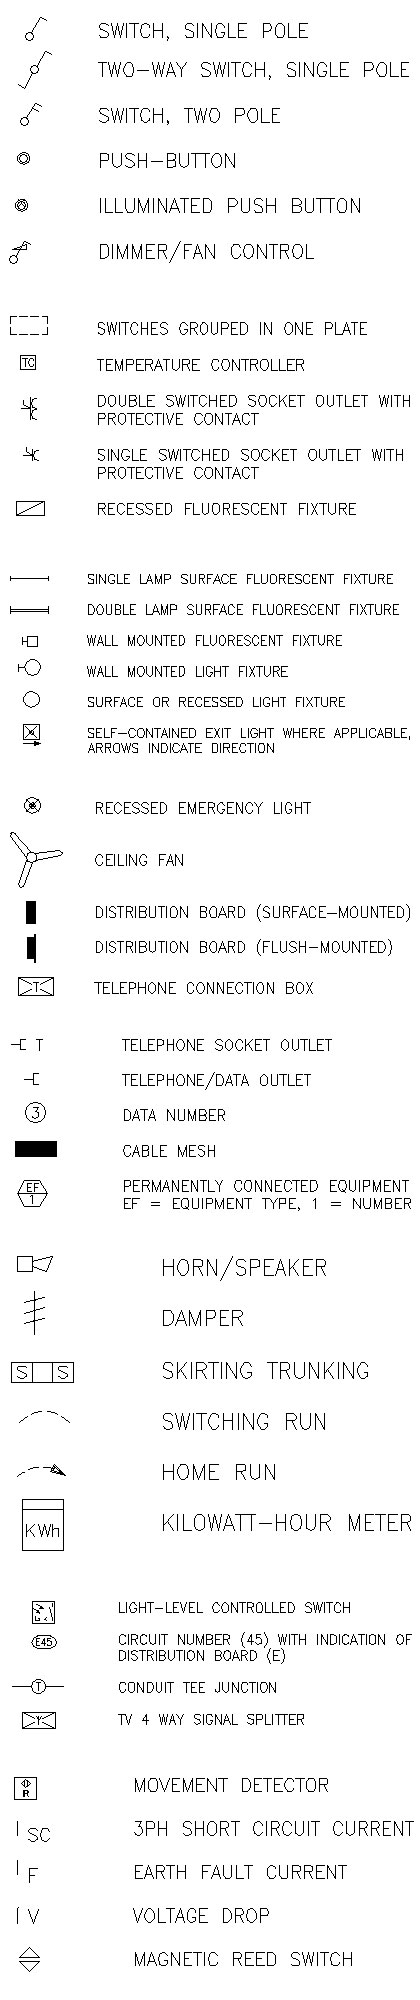 Cad Electrical Symbols Blocks Cad Electrical Drawings Free